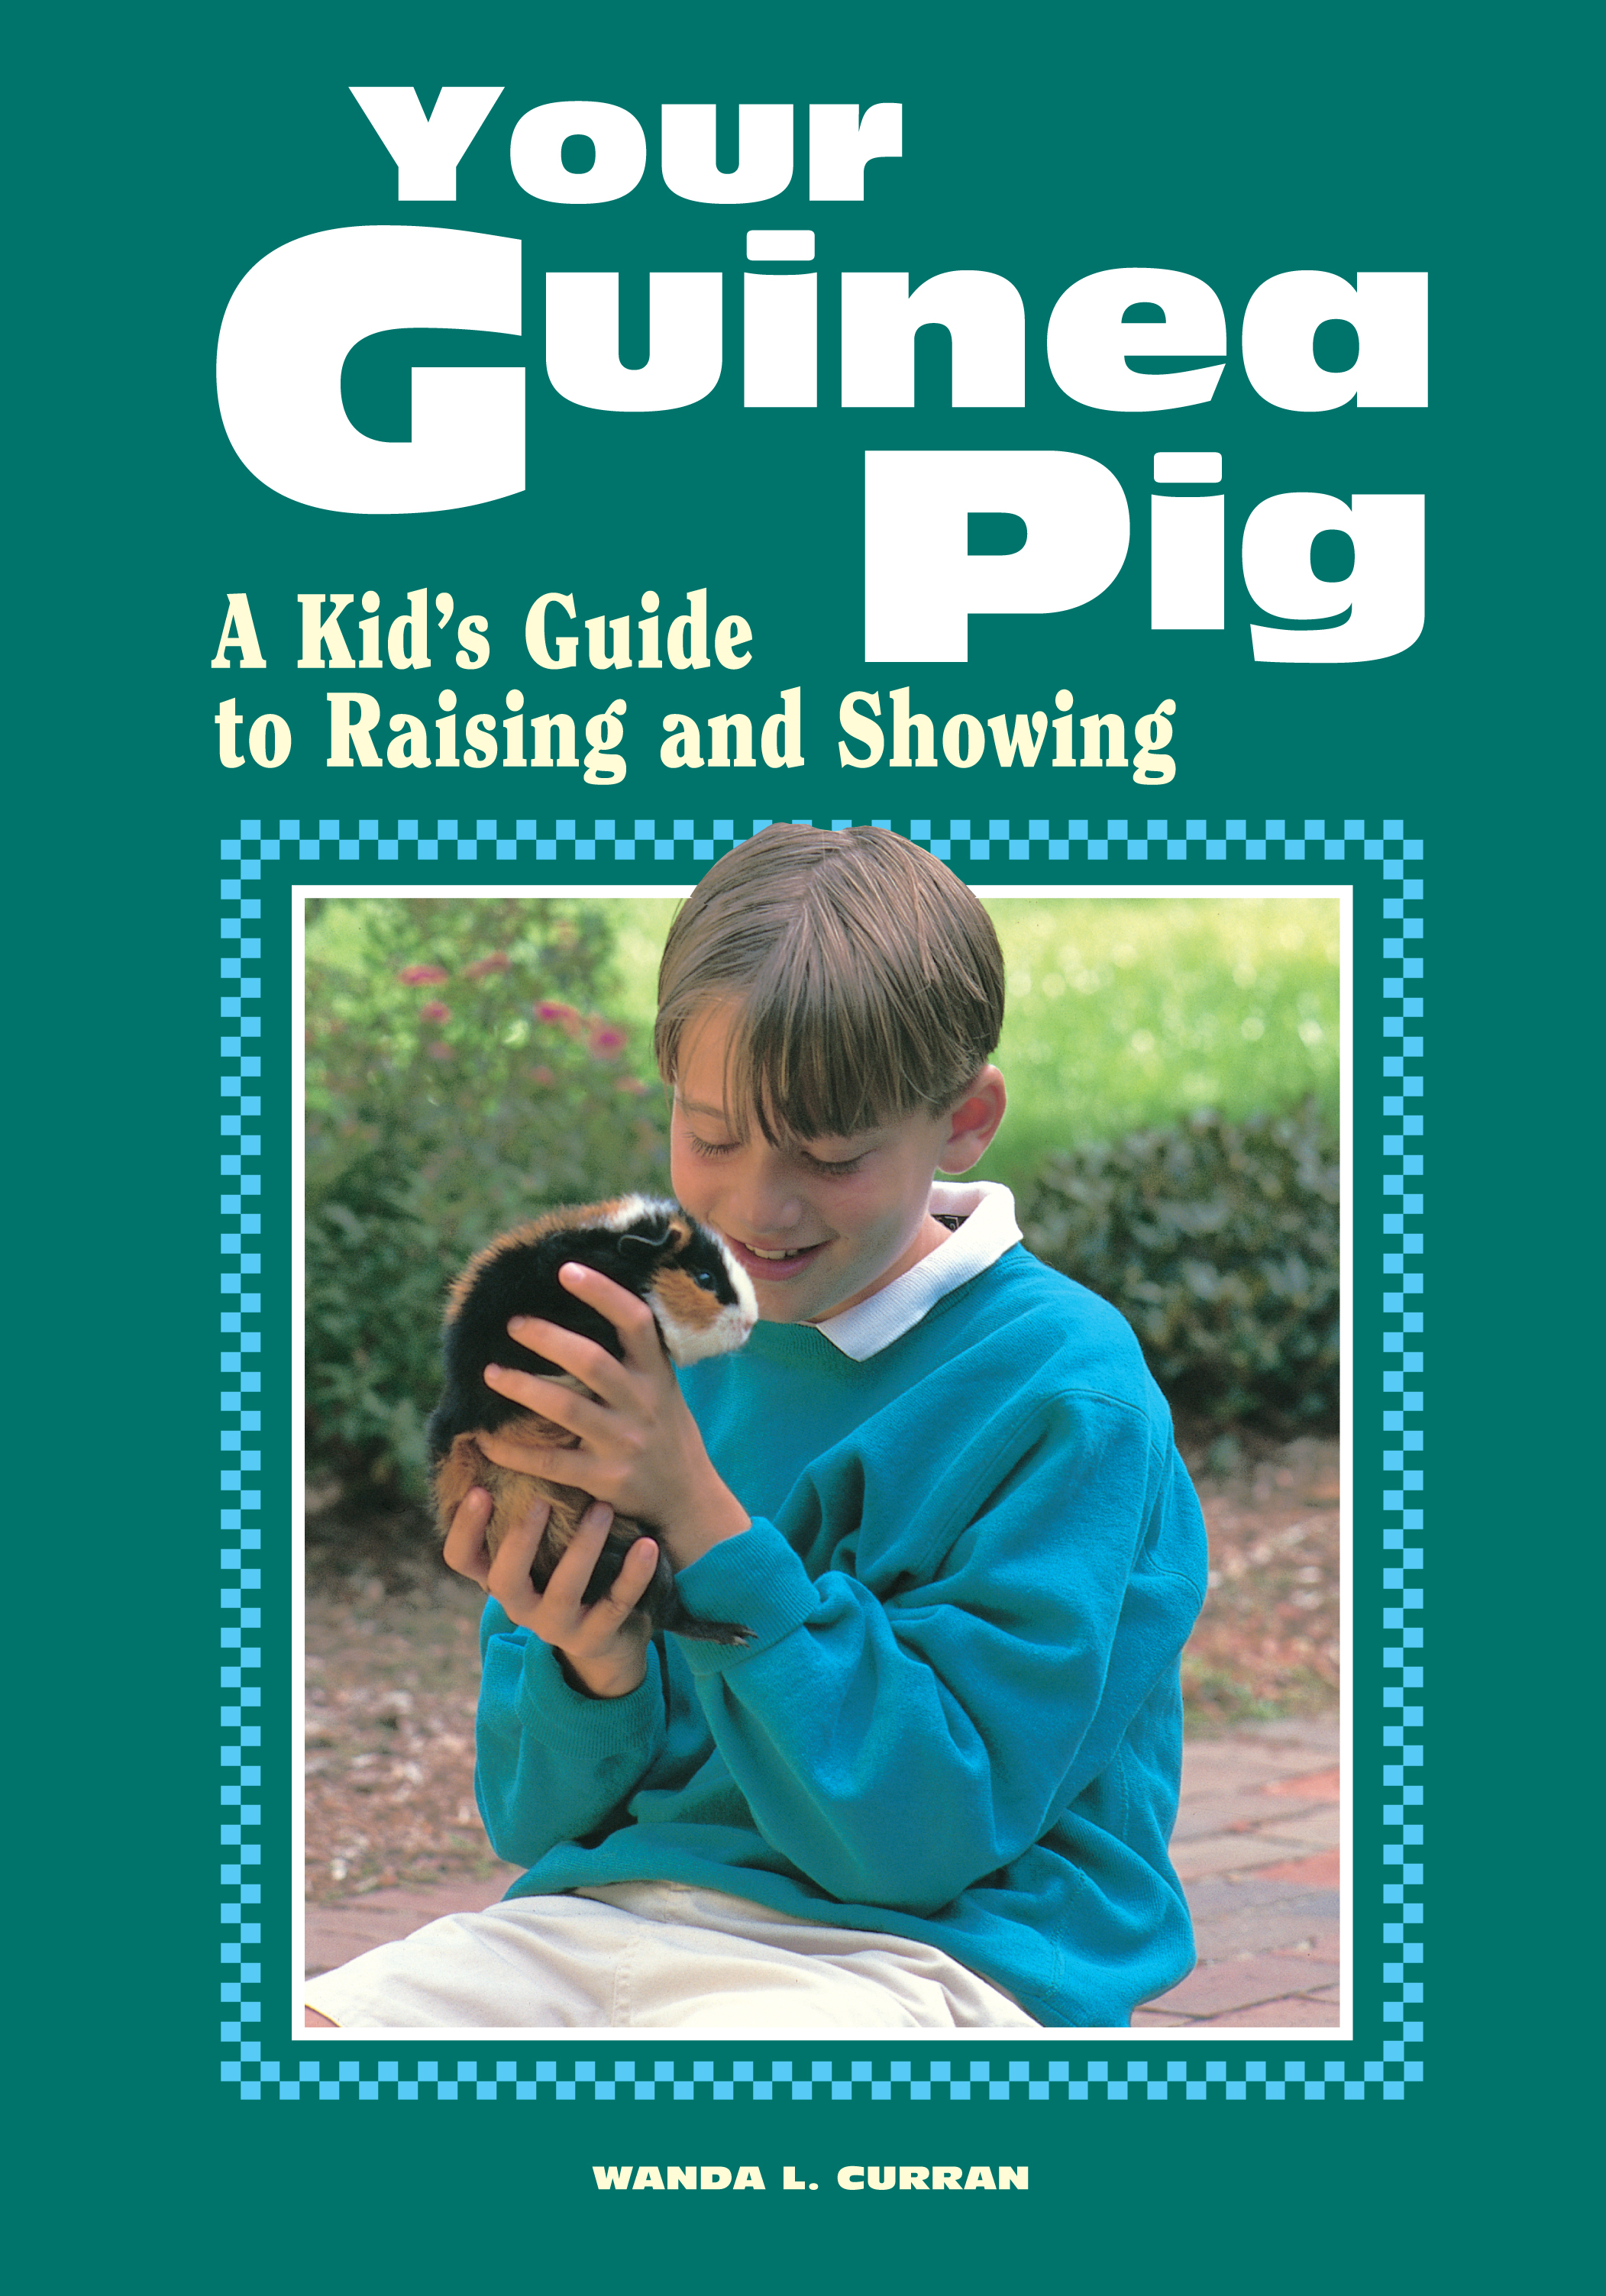 Your Guinea Pig A Kid's Guide to Raising and Showing - Wanda L. Curran